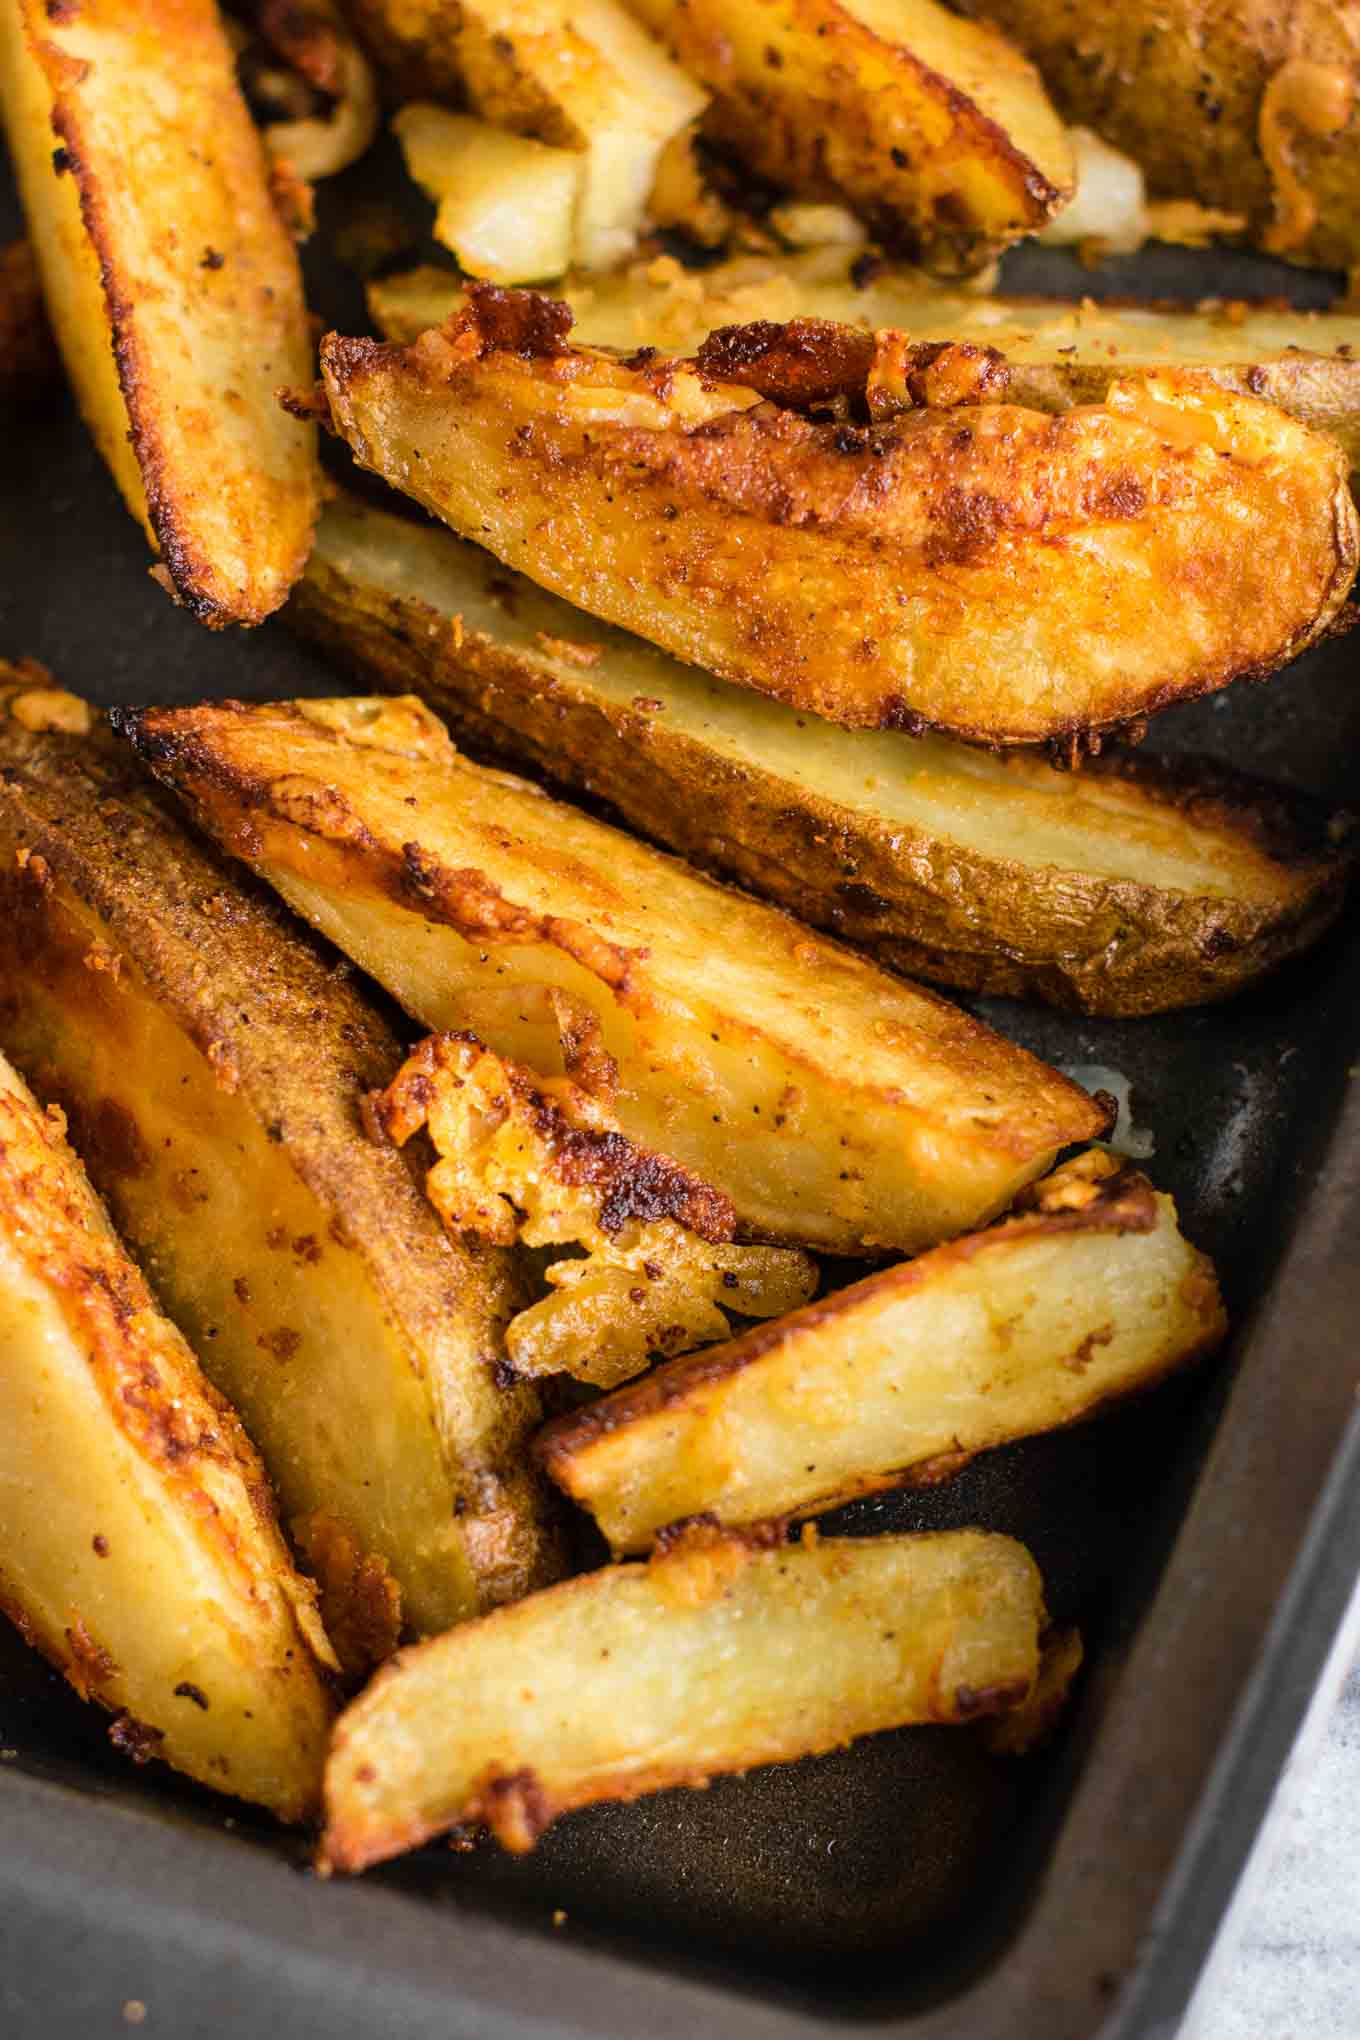 parmesan garlic potato wedges - freshly grated parmesan gives these those amazing crispy edges. Perfect easy side dish! #garlicparmesan #potatowedges #sidedish #vegetarian #parmesan #dinner